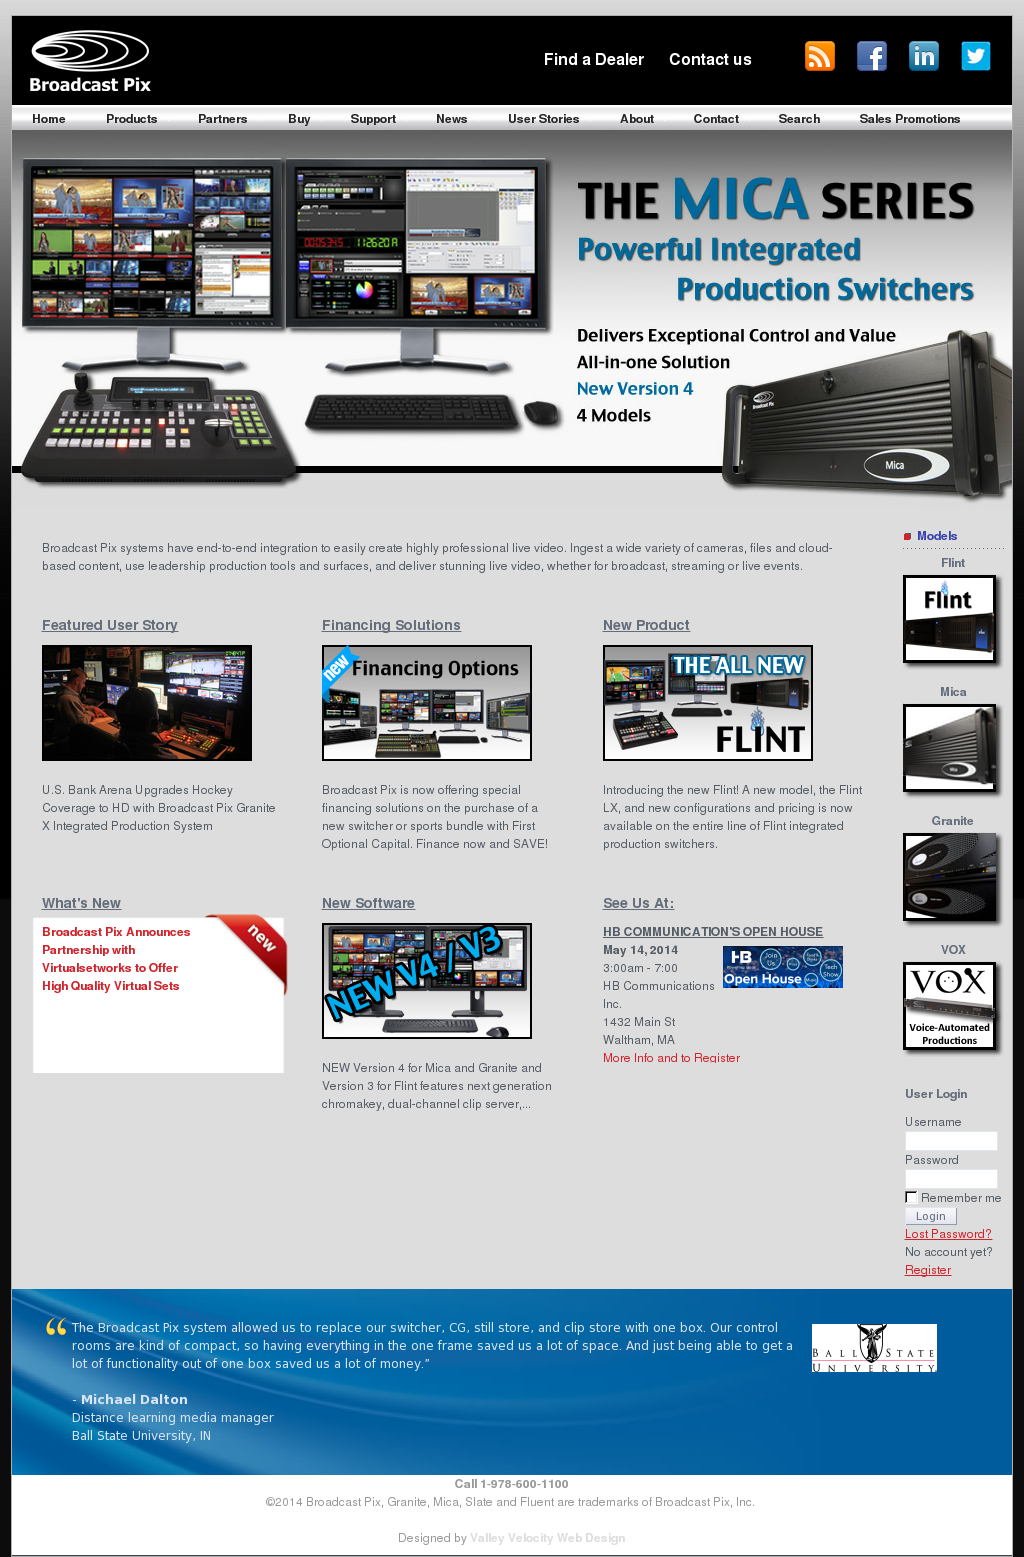 Broadcast Pix Competitors, Revenue and Employees - Owler